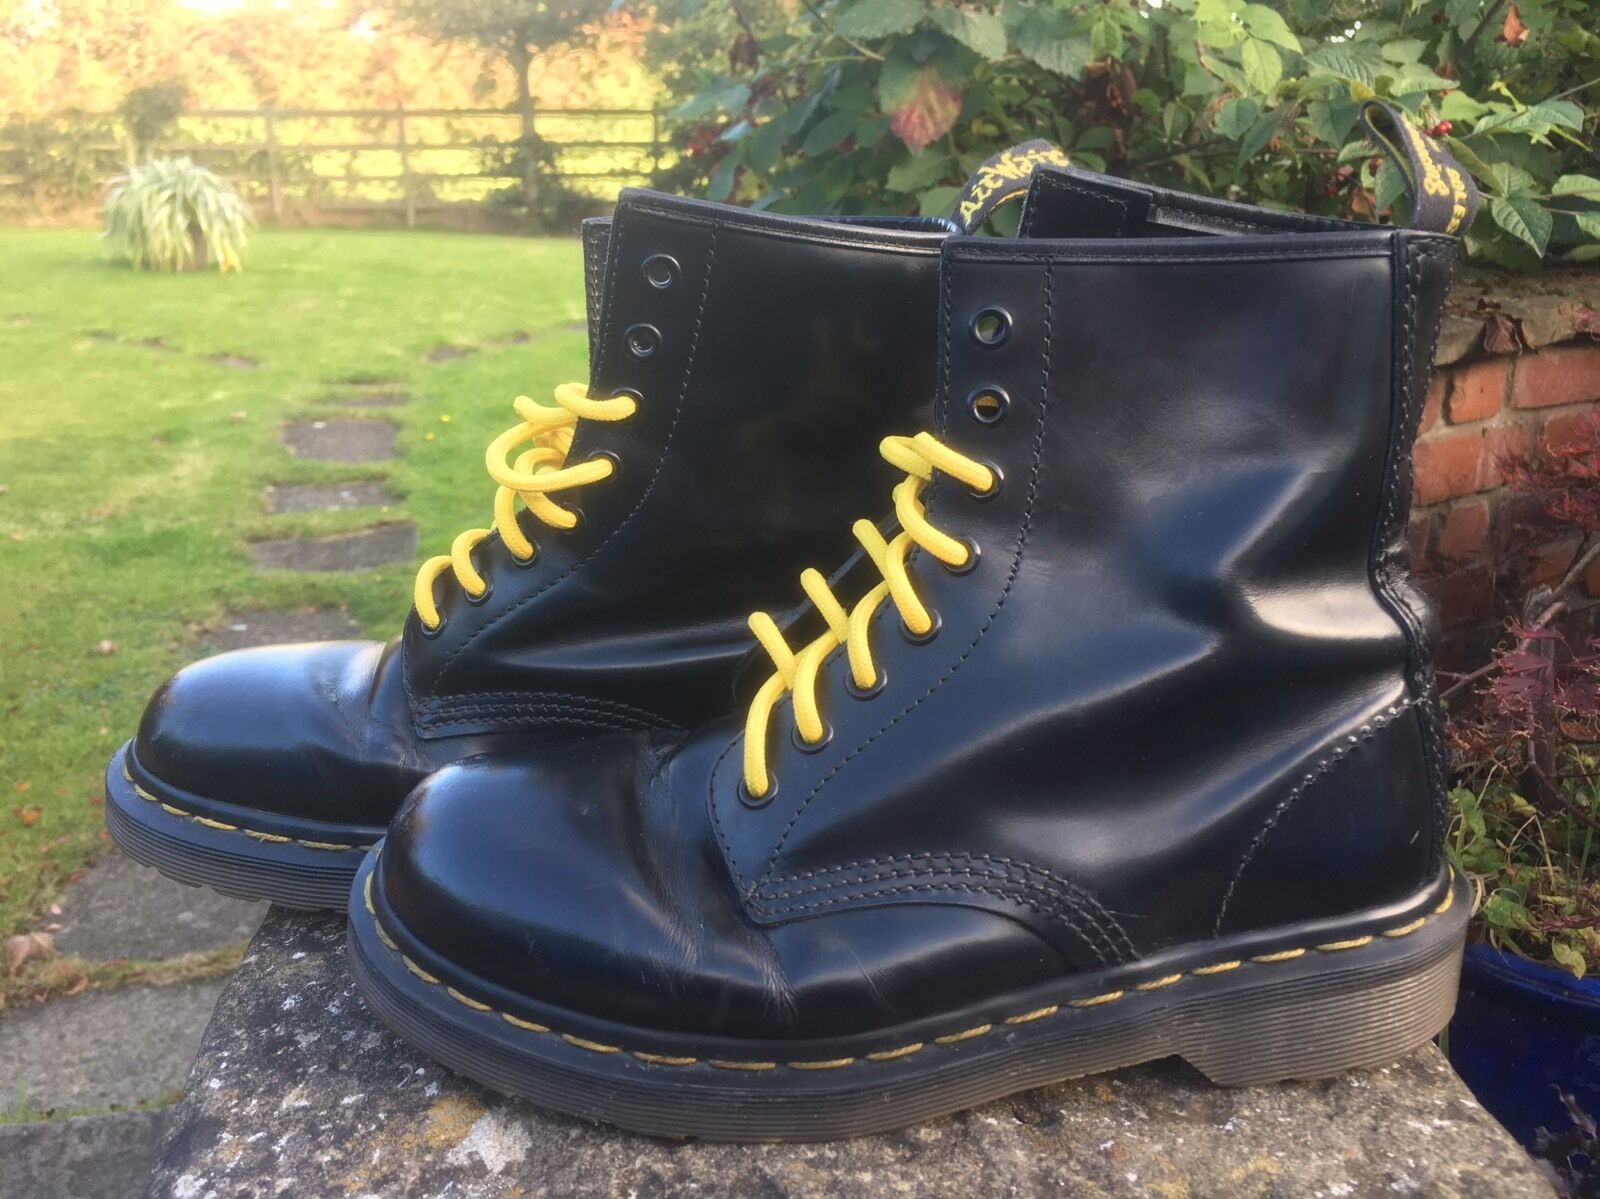 VINTAGE Martens 1460 Nero Dr Stivali in Pelle EU 39 Made in England